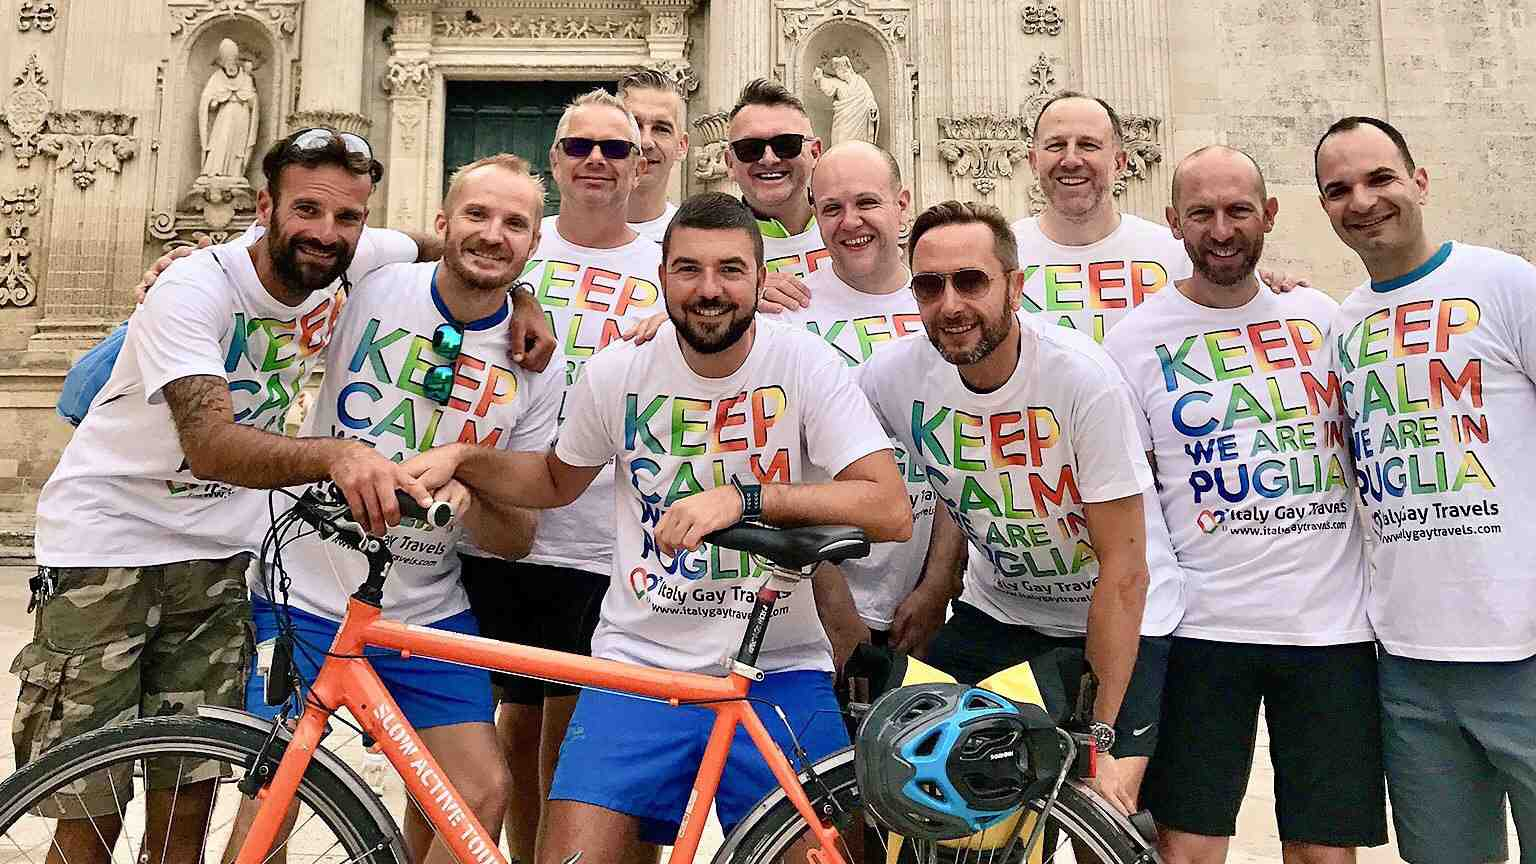 Our friend Sergio organises fabulous gay tours of Puglia which we definitely recommend